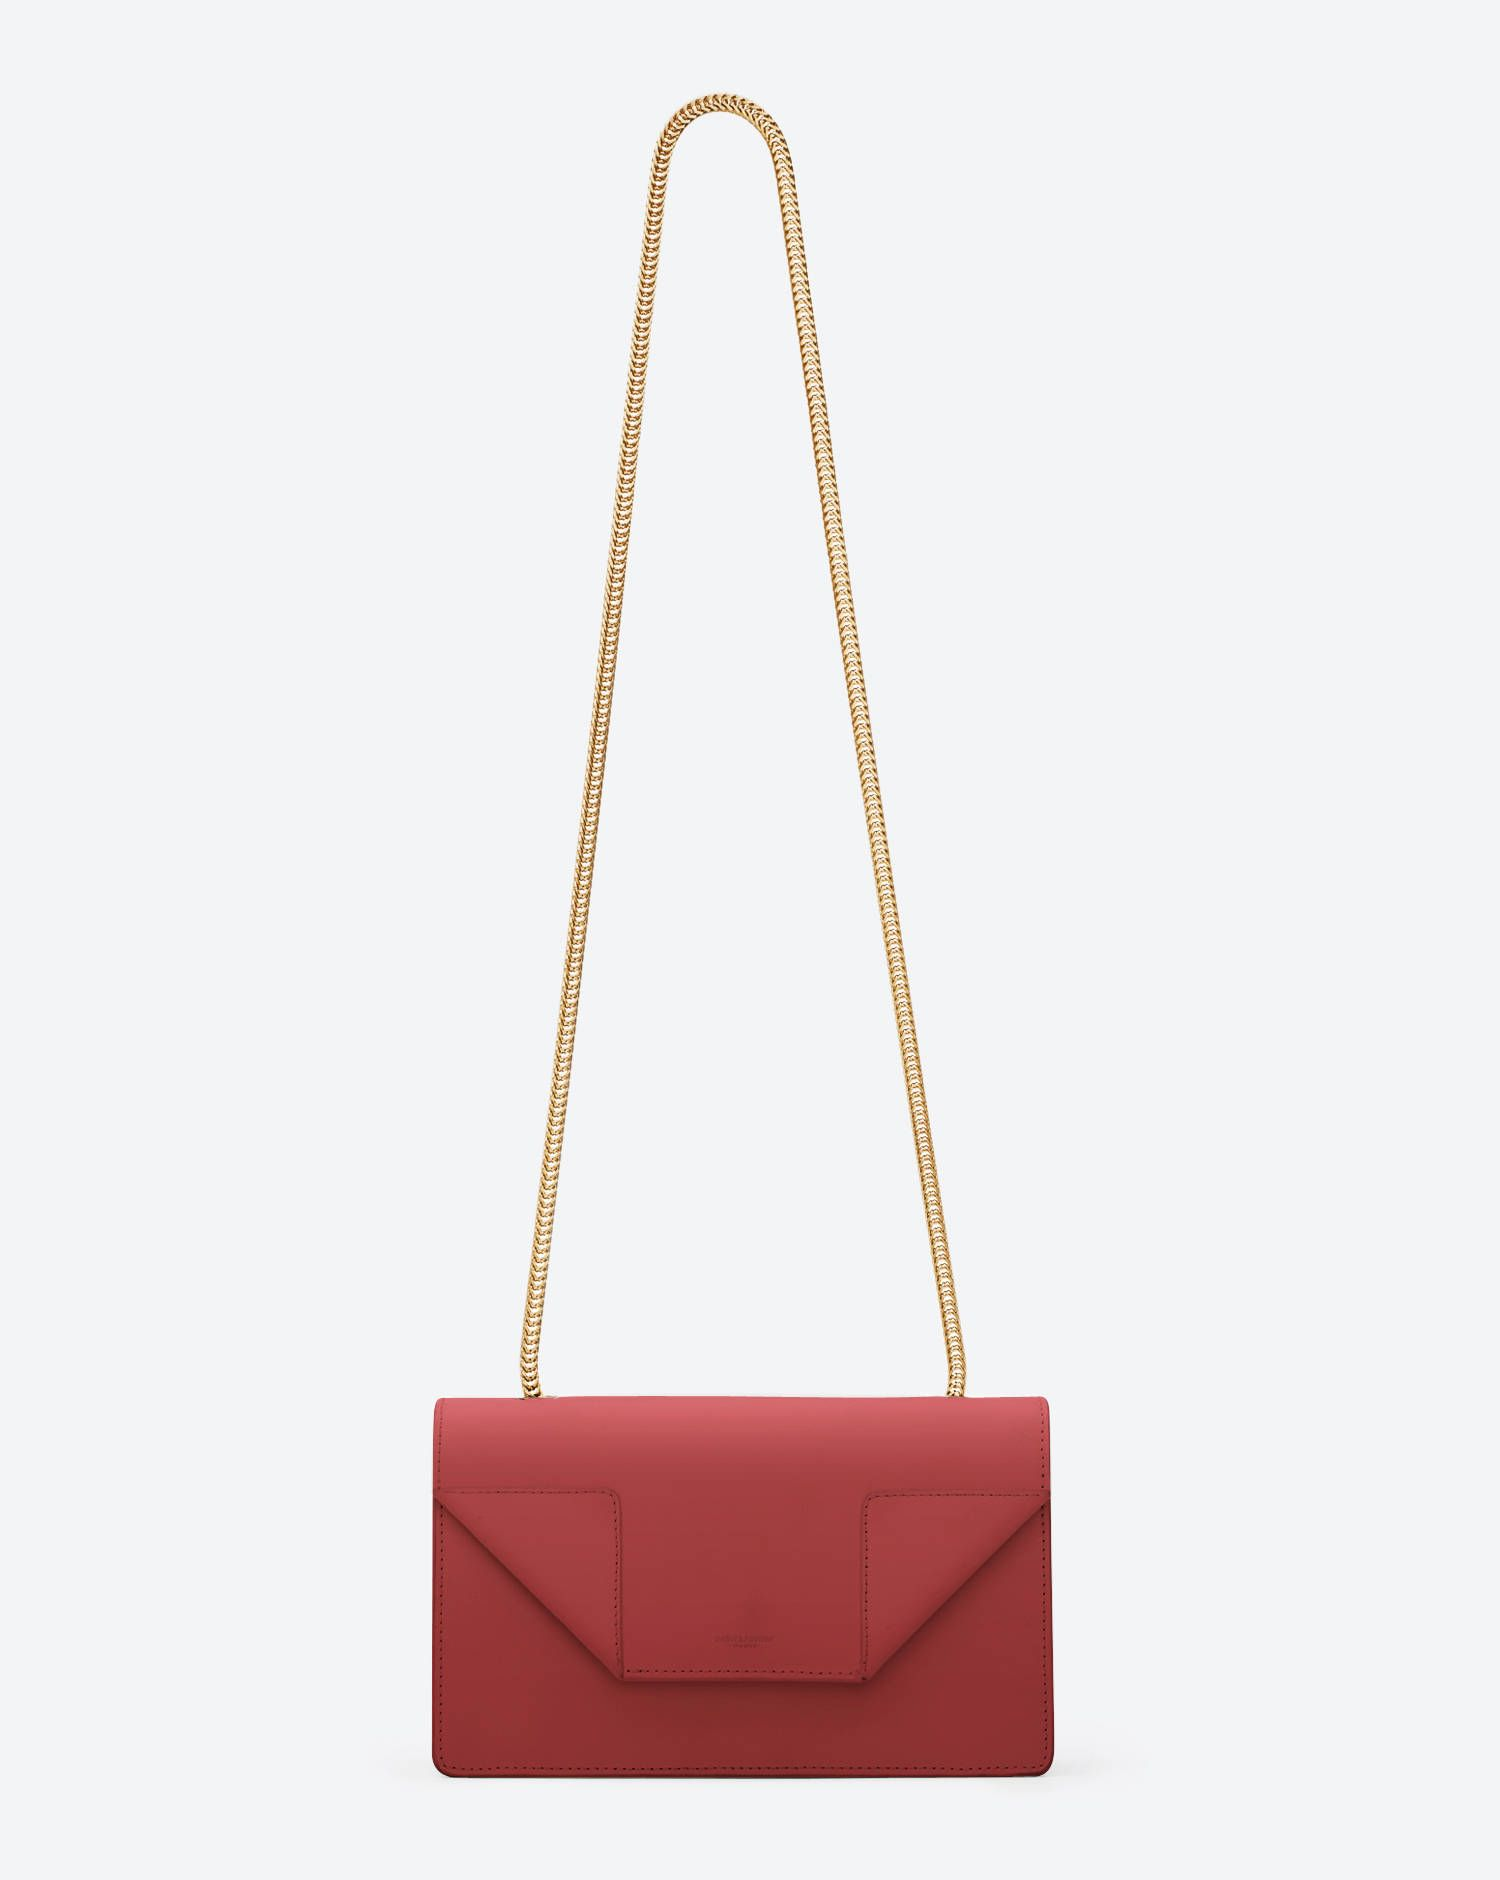 5dea55b91acd5 Classic Saint Laurent Mini Betty Bag in Red Leather - Betty Mini – Handbags  – Shop Women – Yves Saint Laurent – www.ysl.com